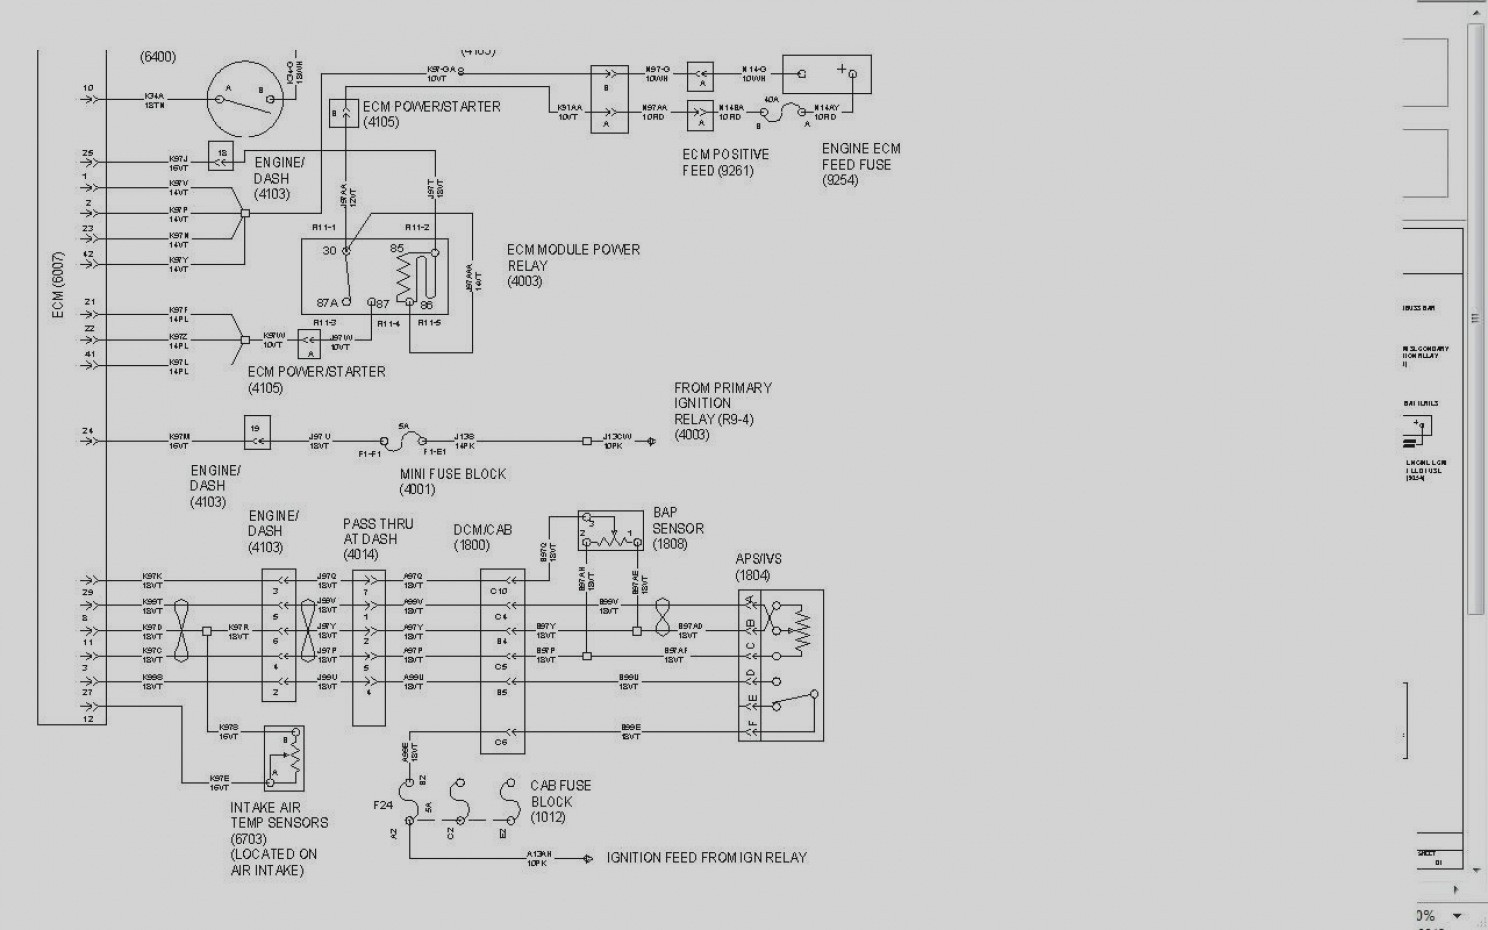 hight resolution of 2006 international 7300 fuse diagram wiring diagram value 2006 international 7300 fuse diagram wiring diagram used